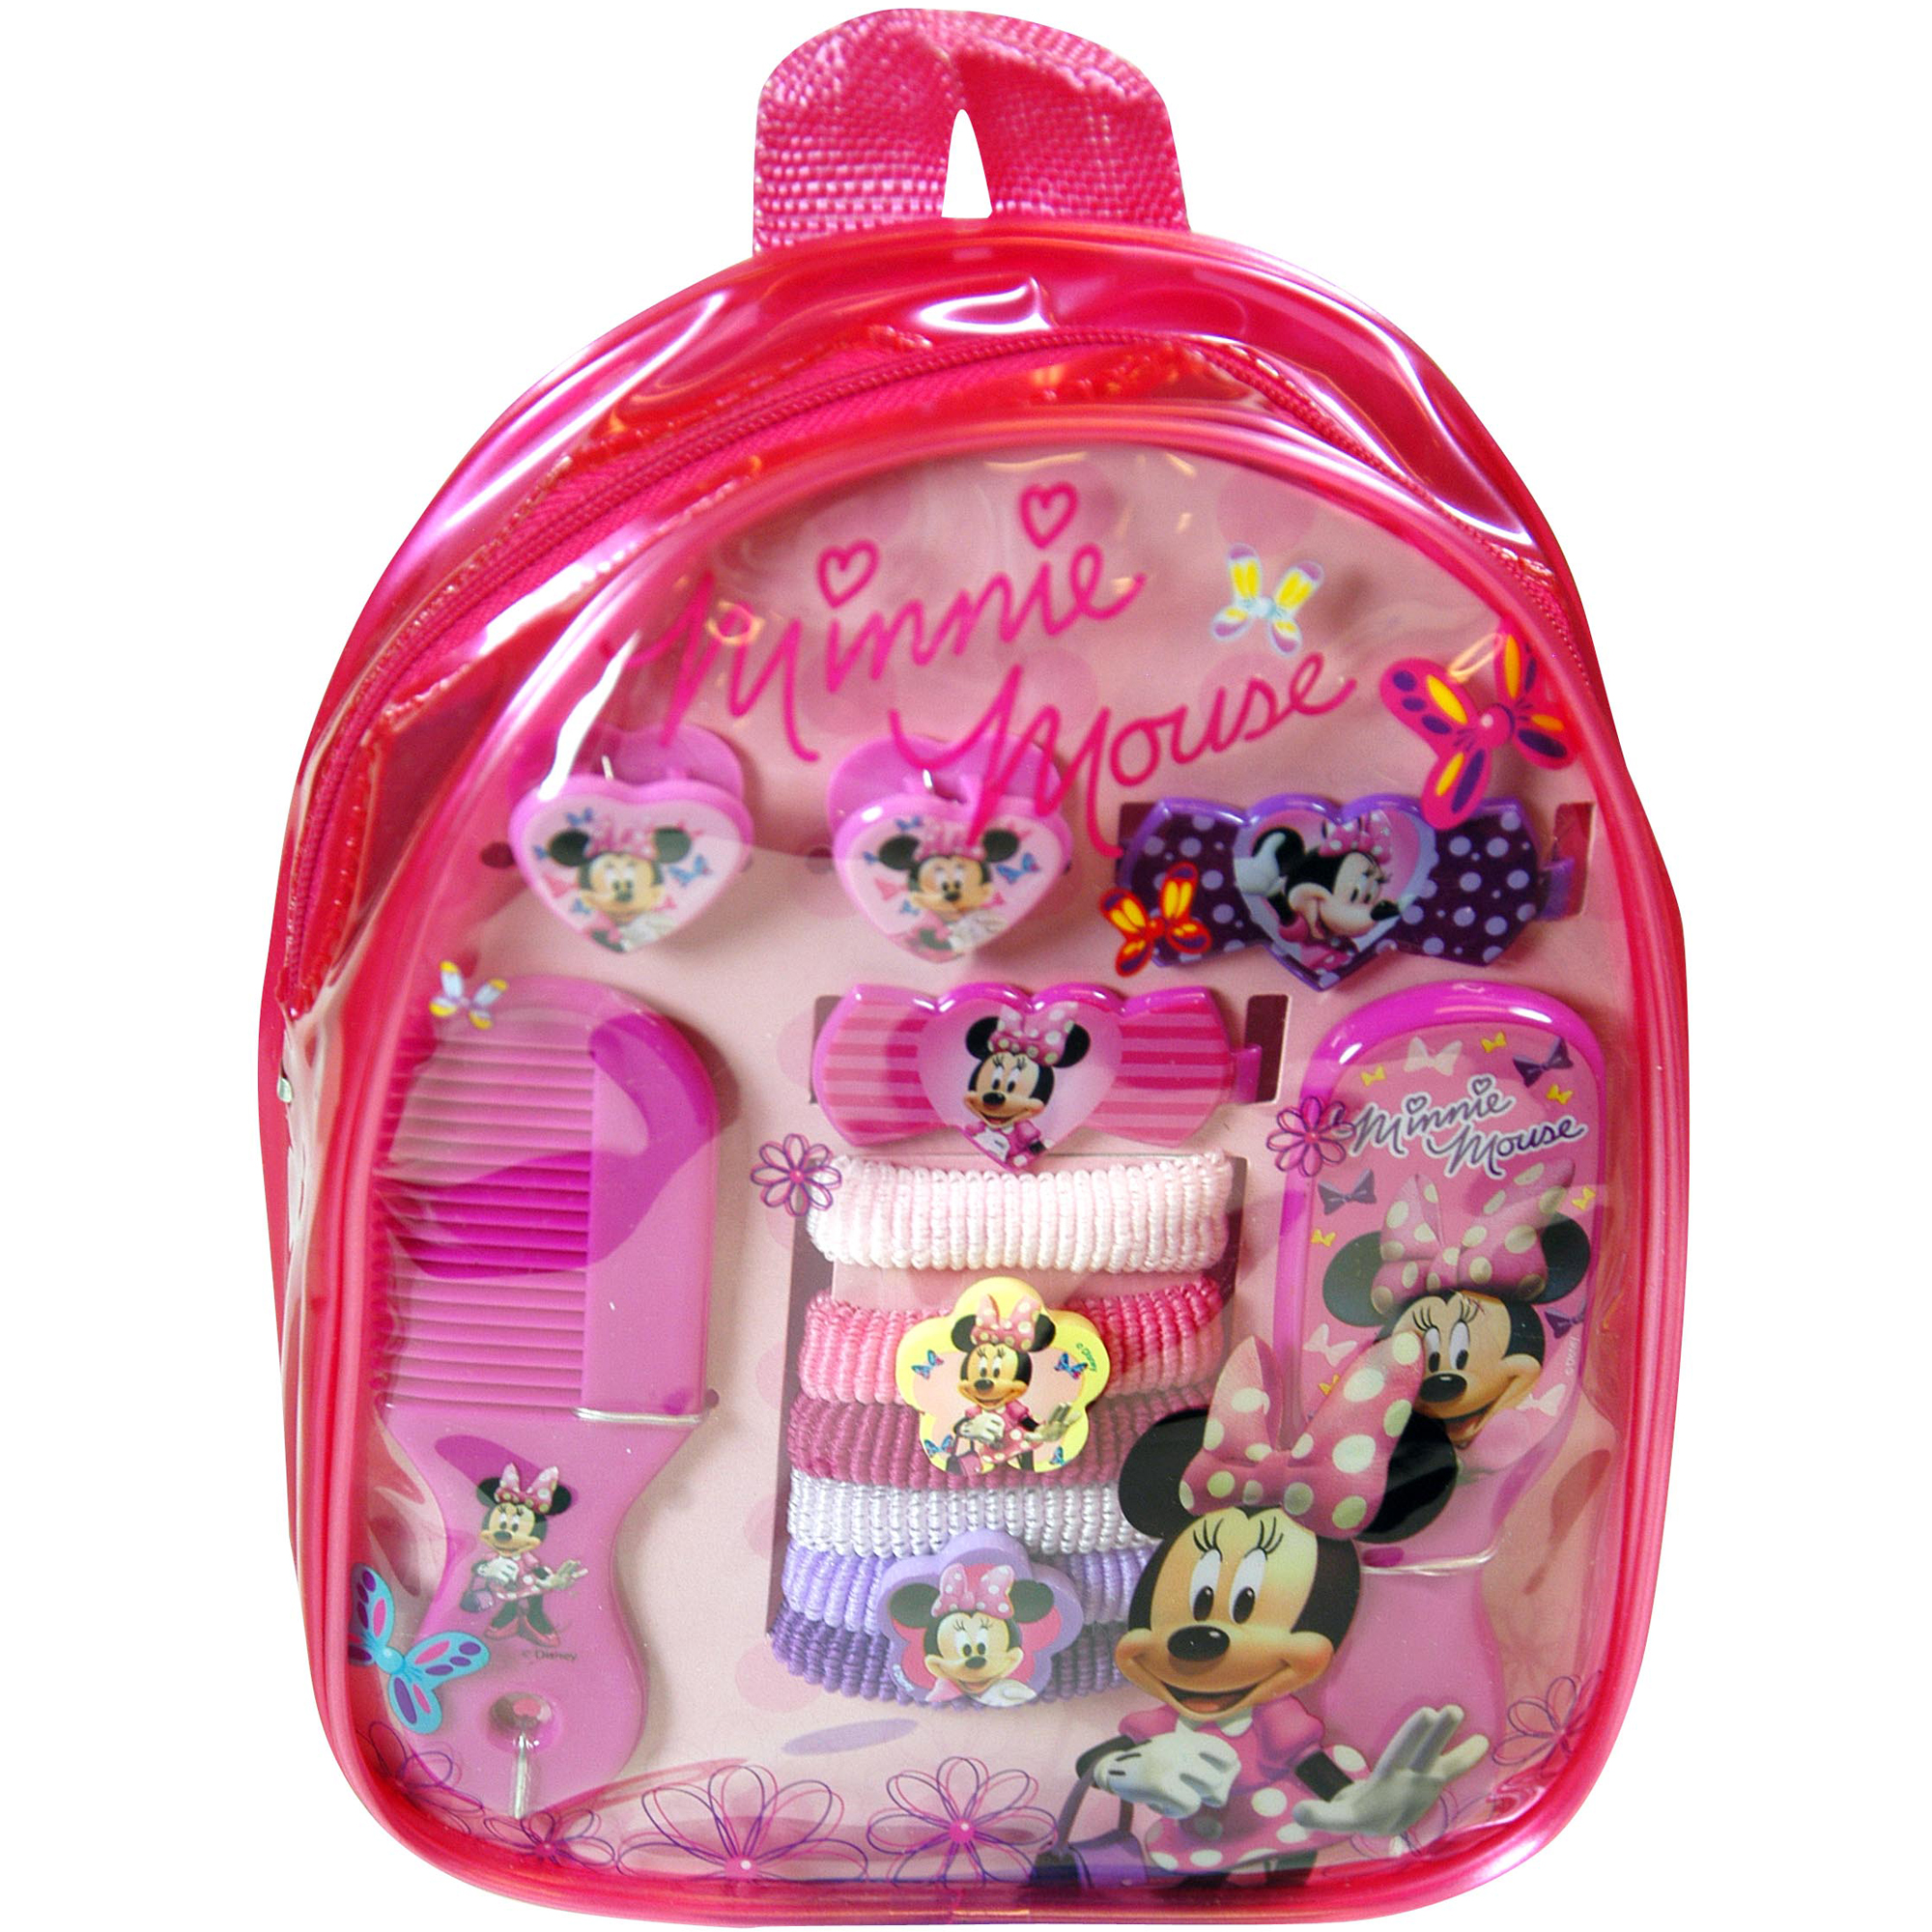 Disney 11pc Girls Minnie Mouse Hair Accessory Backpack at Sears.com